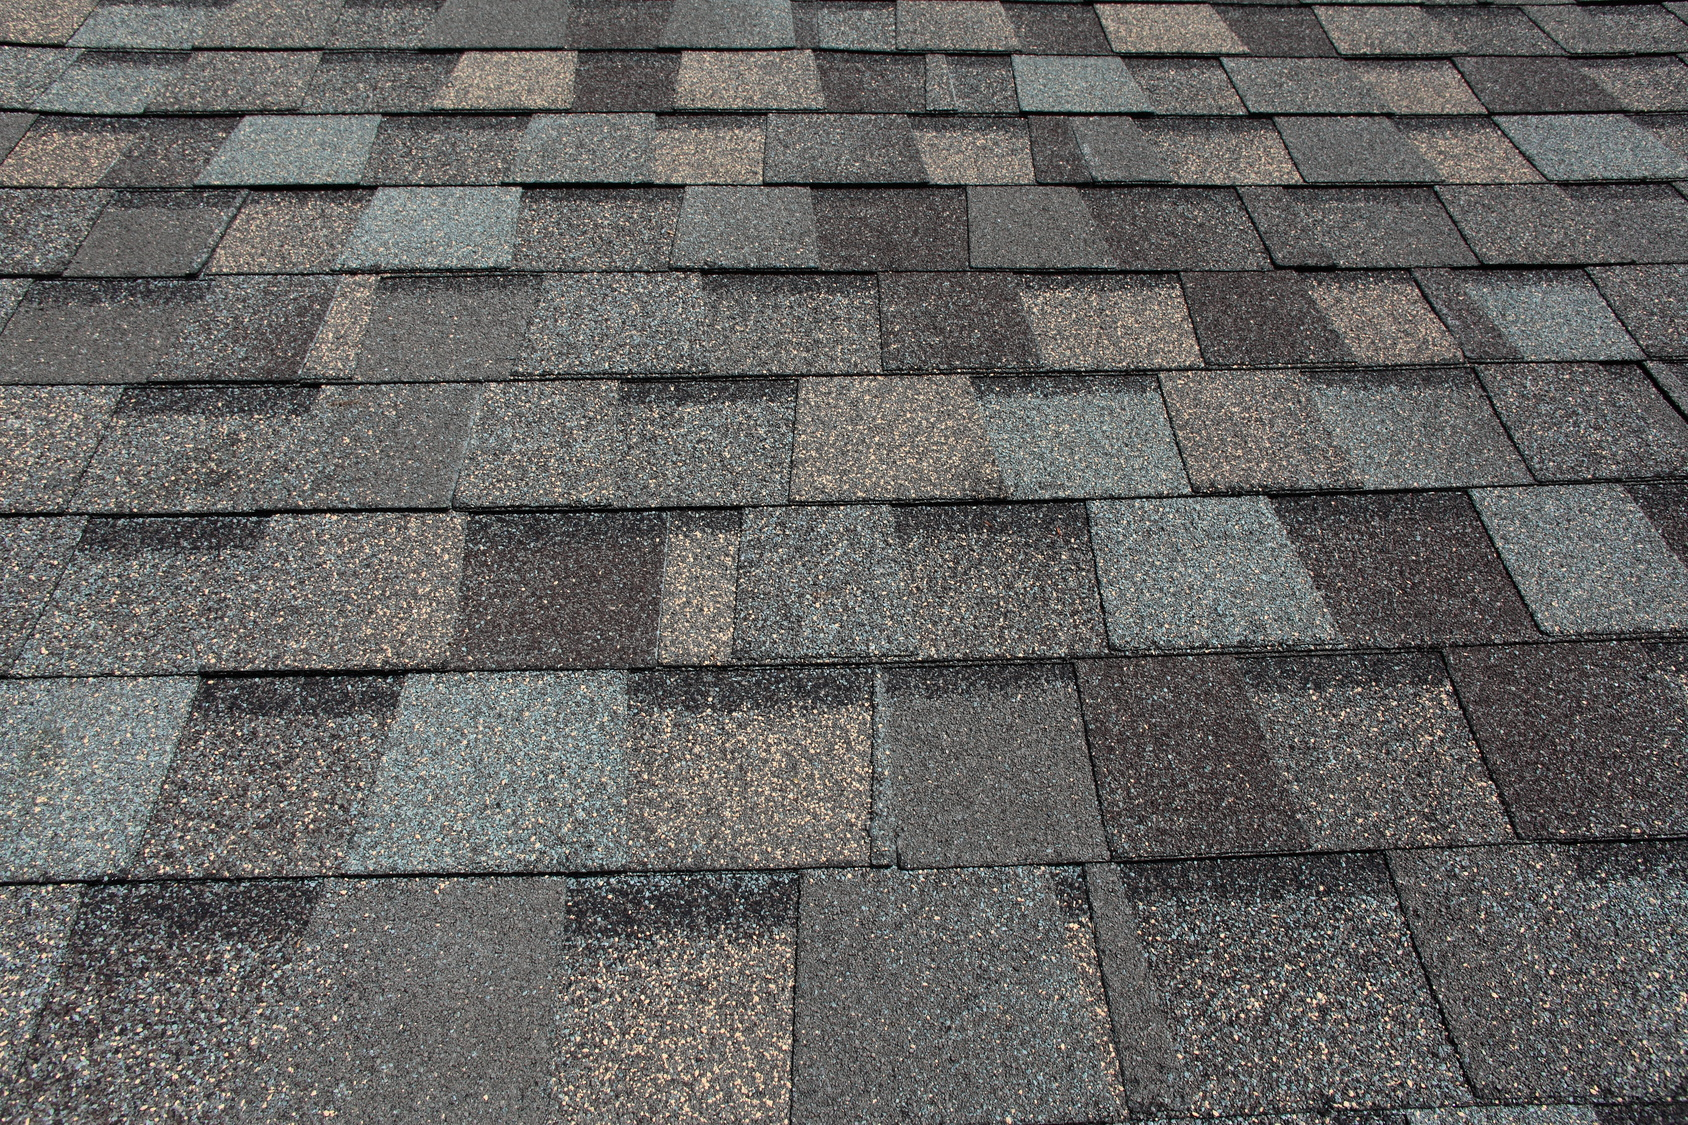 close up of new asphalt shingle roof